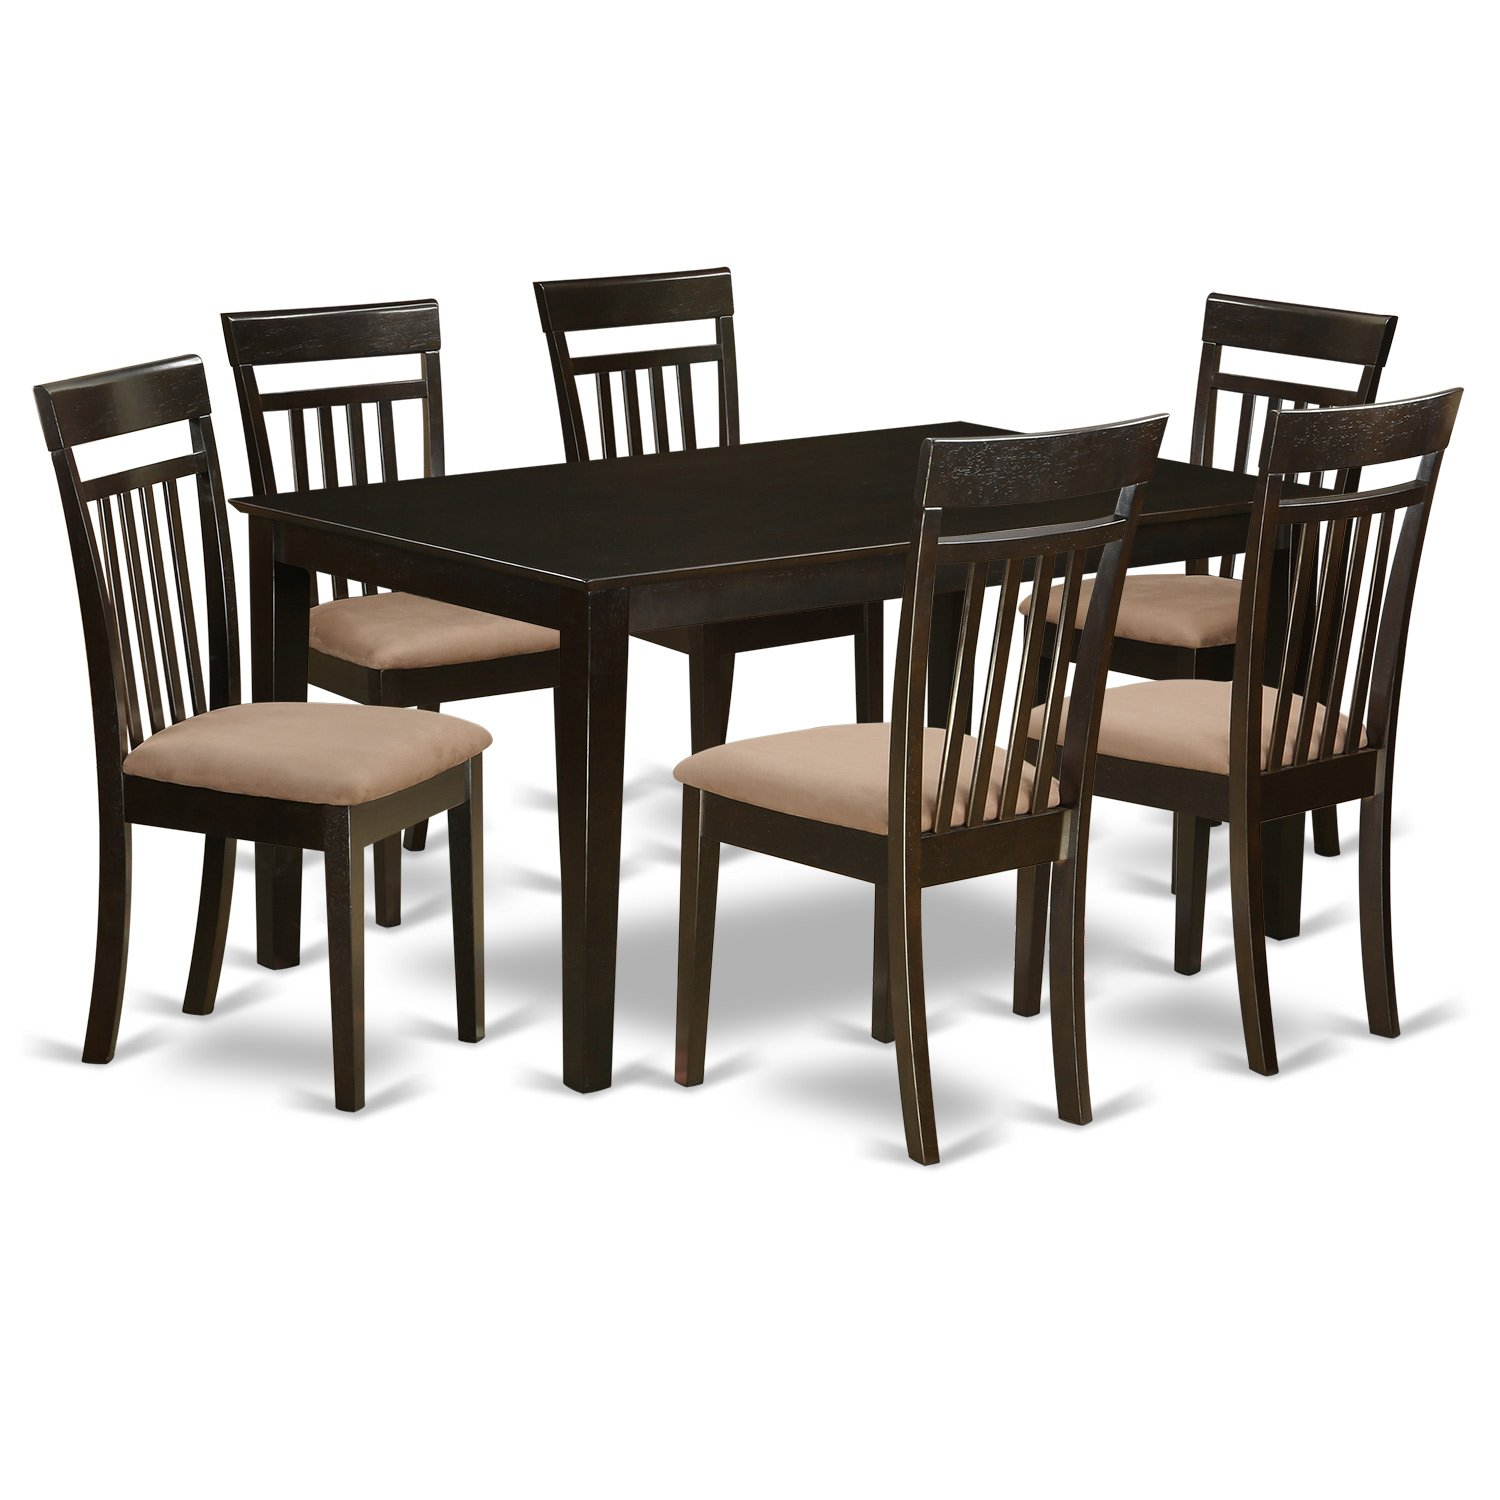 CAP7S-CAP-C 7 Pc formal Dining room set -Table and 6 Dining Chairs